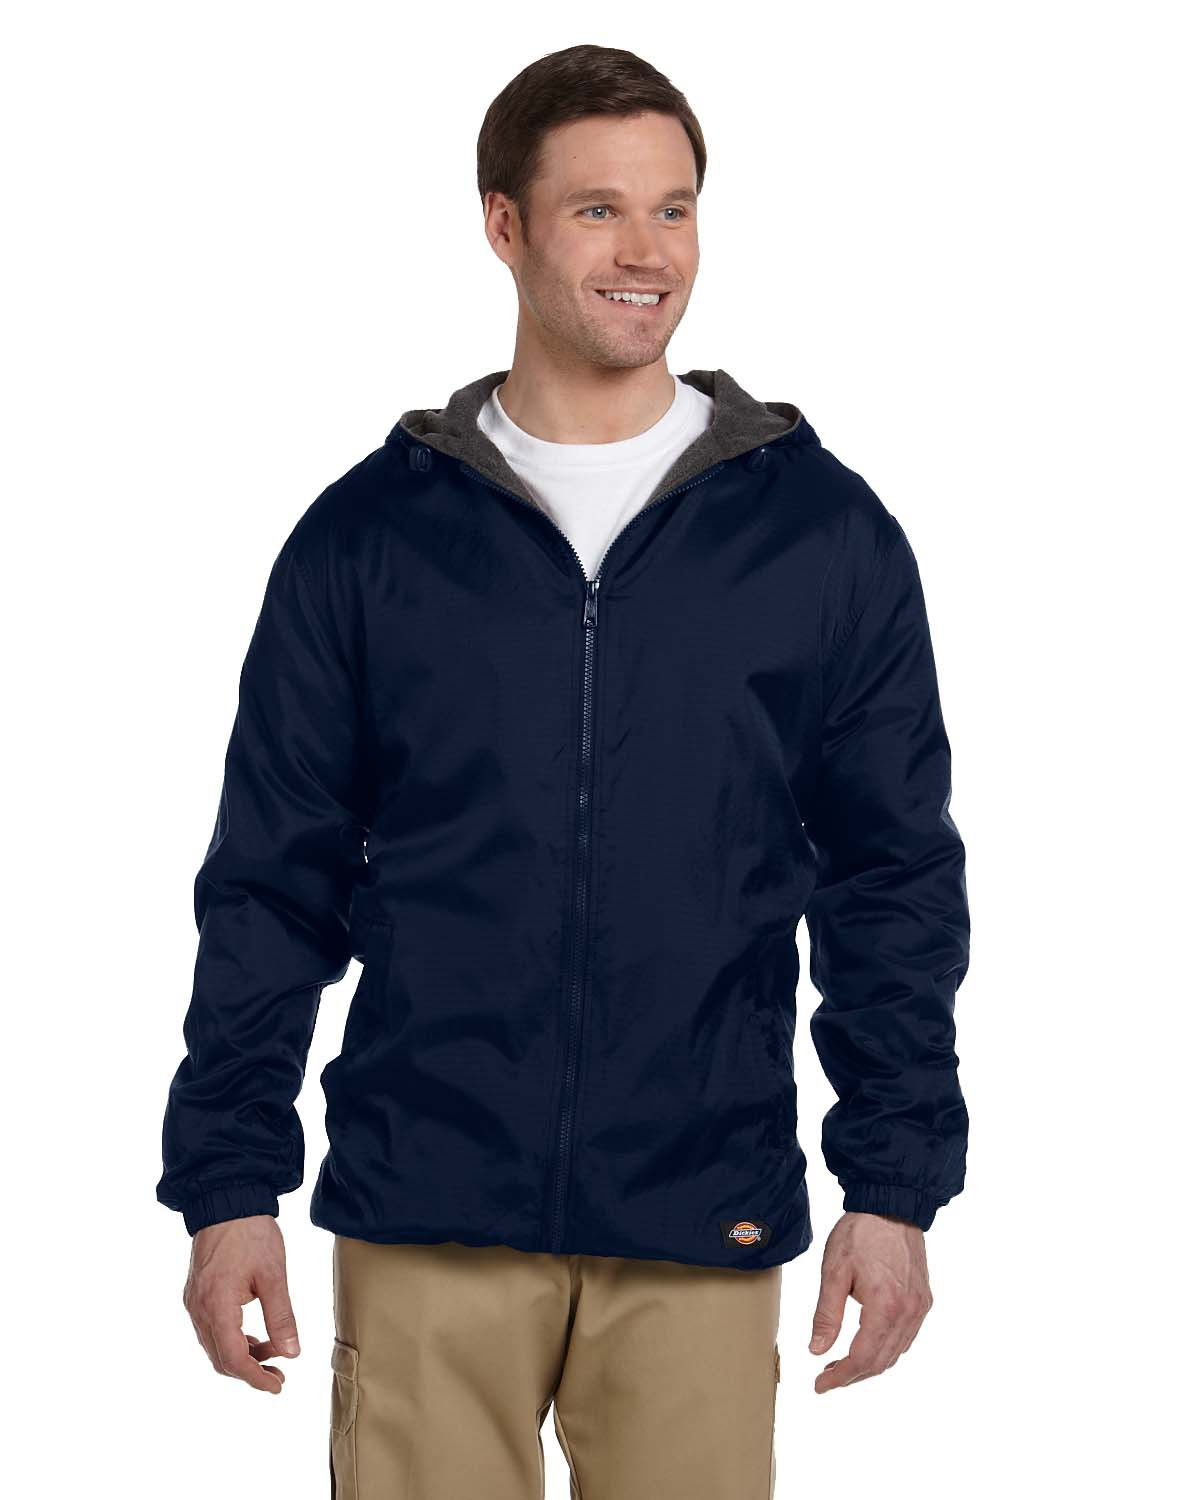 Dickies 33237 - Adult Fleece-Lined Rip Stop Jacket